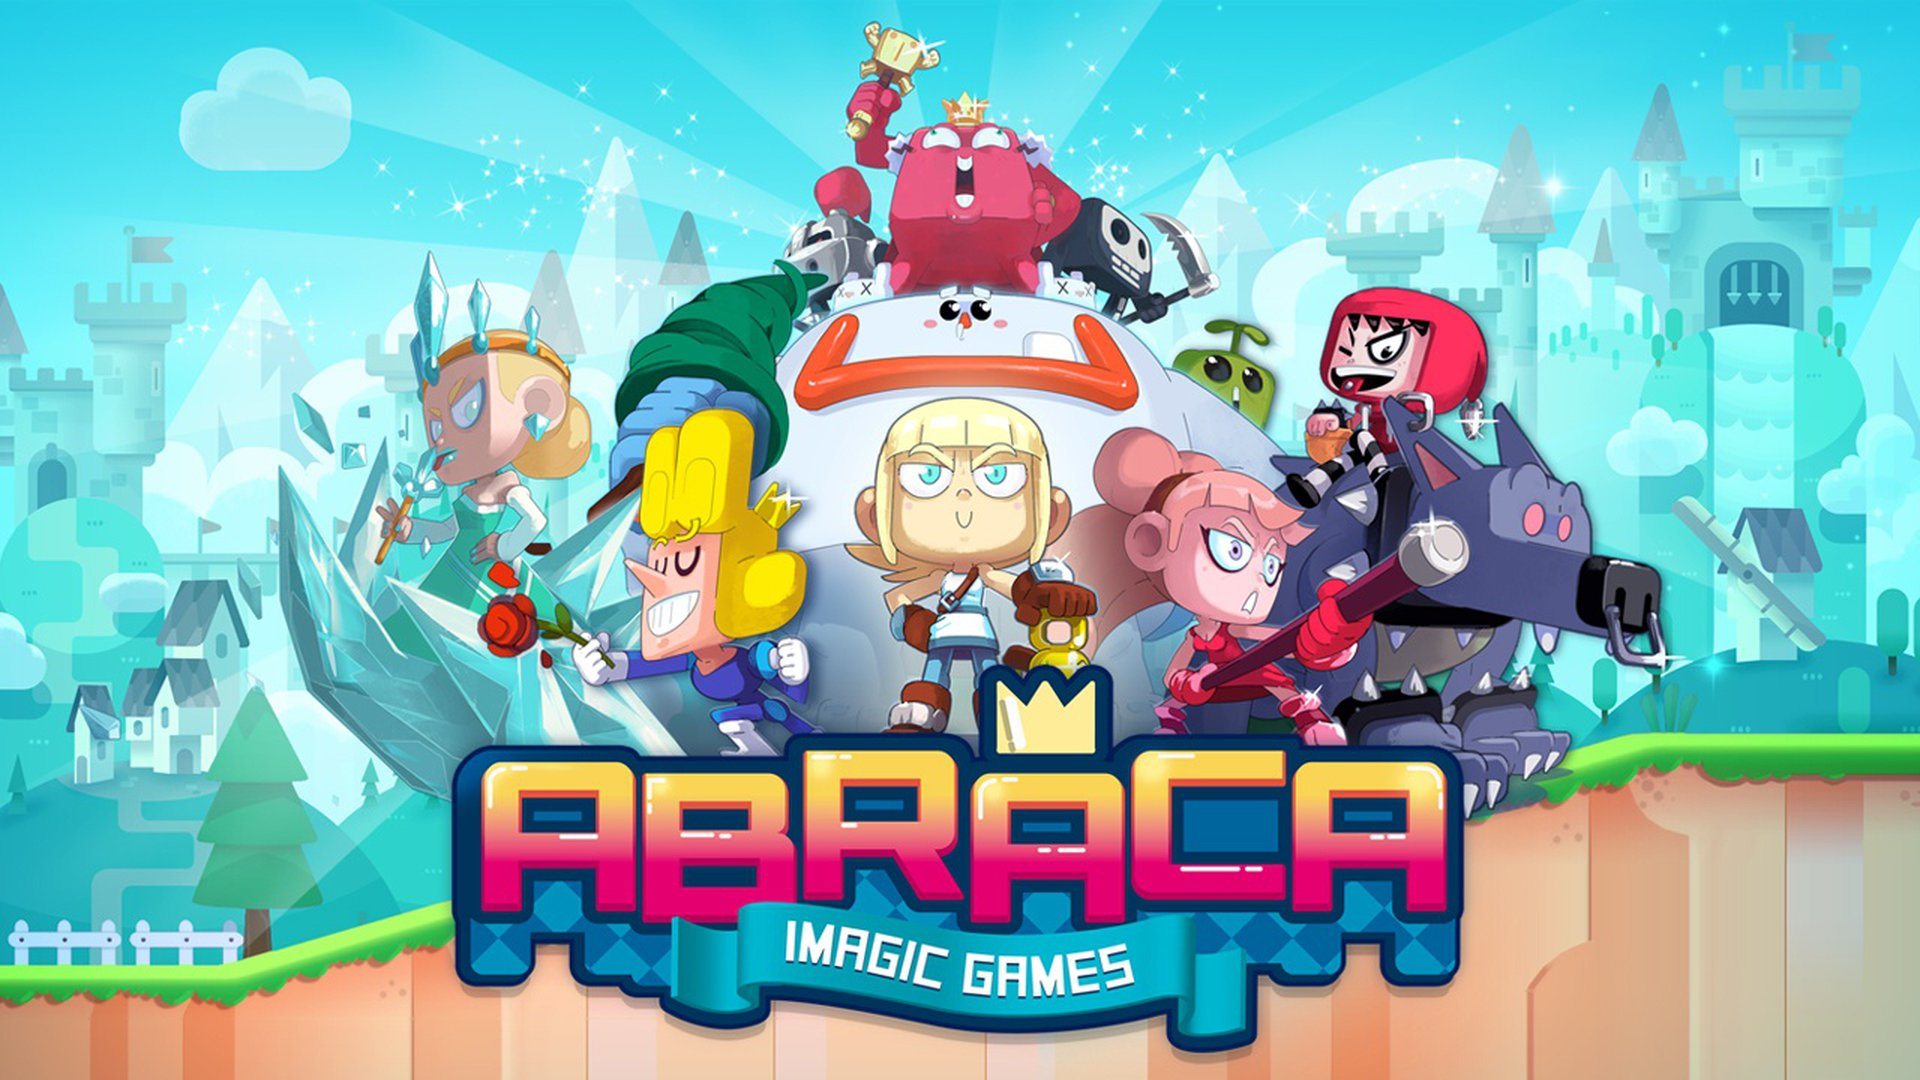 Abraca: Imagic Games